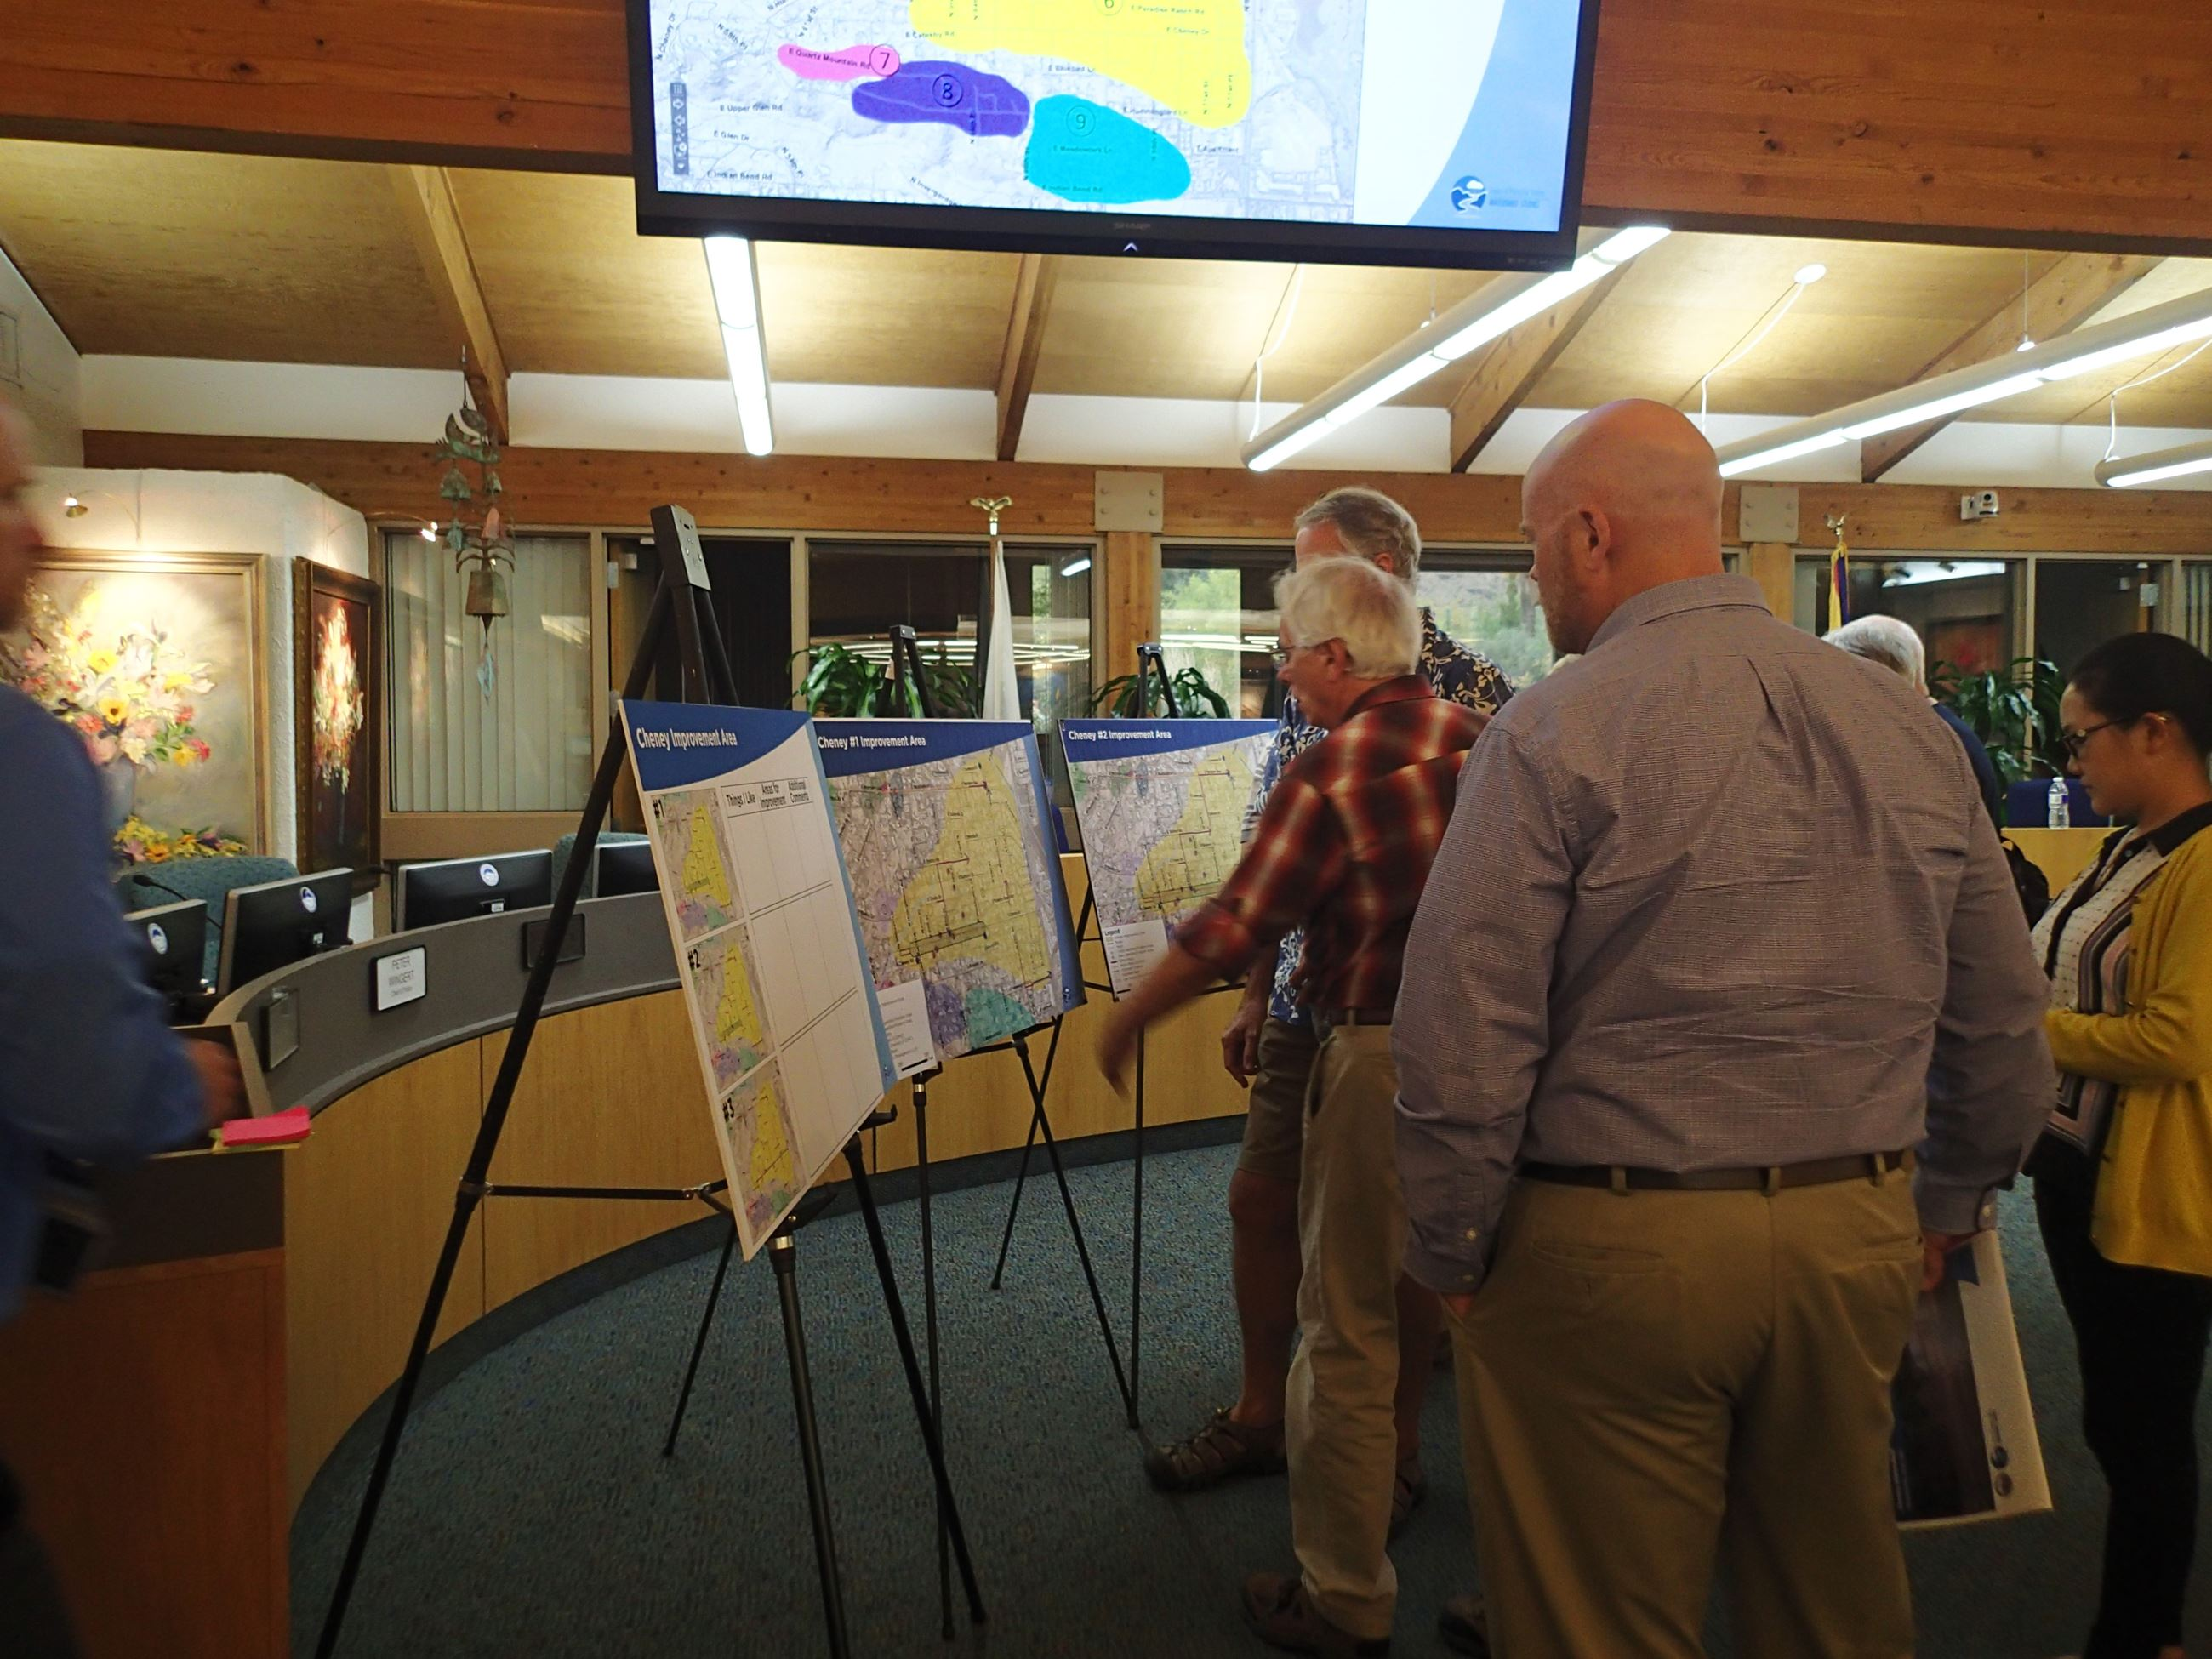 Wathershed Public Meeting Attendees Looking at Displays